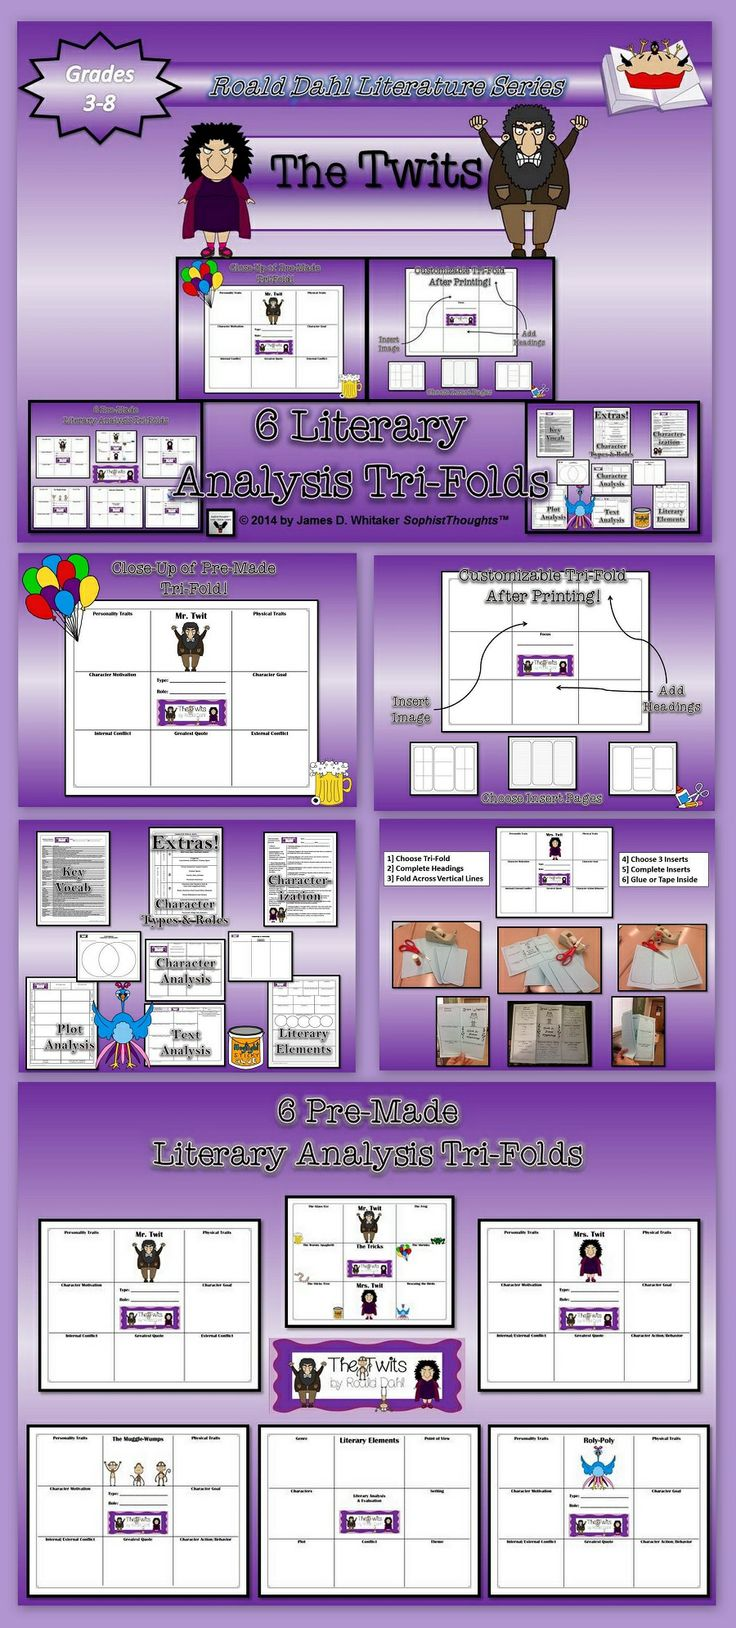 Explore the idiosyncrasies and antics of the characters in Roald Dahl's dastardly novel The Twits. You can design your own foldable (after printing) by creating your own headings. You can also have students create them for a more inclusive activity. Tri-Folds are the perfect companion activity for the novel. Works well for bulletin board display, end project, book report or traditional essay alternative.